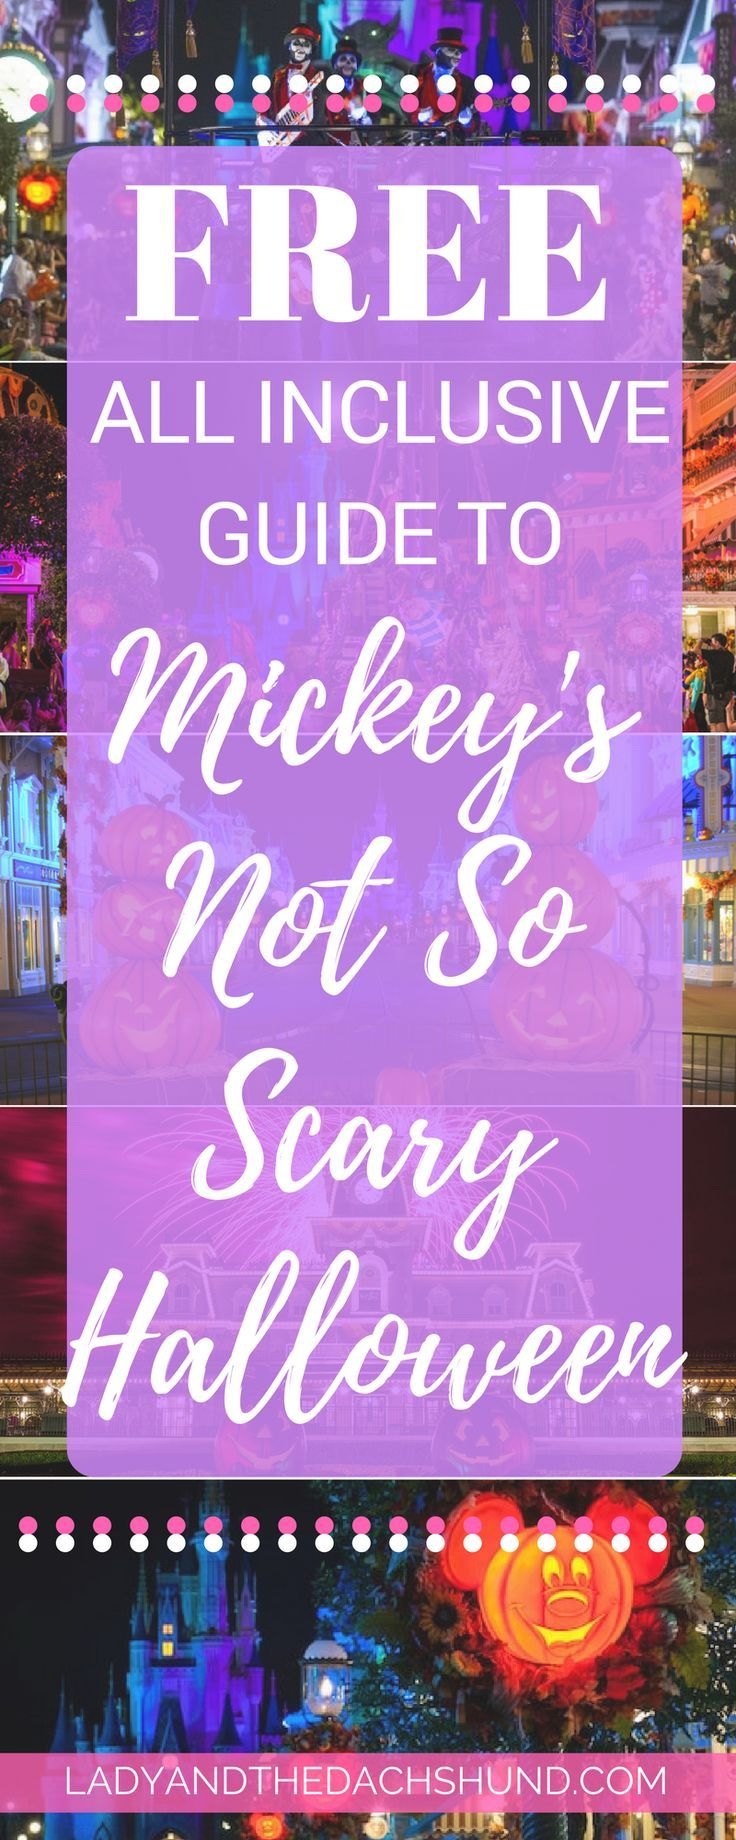 Mickey's Not So Scary Halloween Party 2017 All Inclusive Guide. Tips, Tricks, and Hacks for the best Mickey's Not So Scary Ever! Save Time, Money, and Headache while getting the most out of your Mickey's Not So Scary Halloween Party at Disney World!